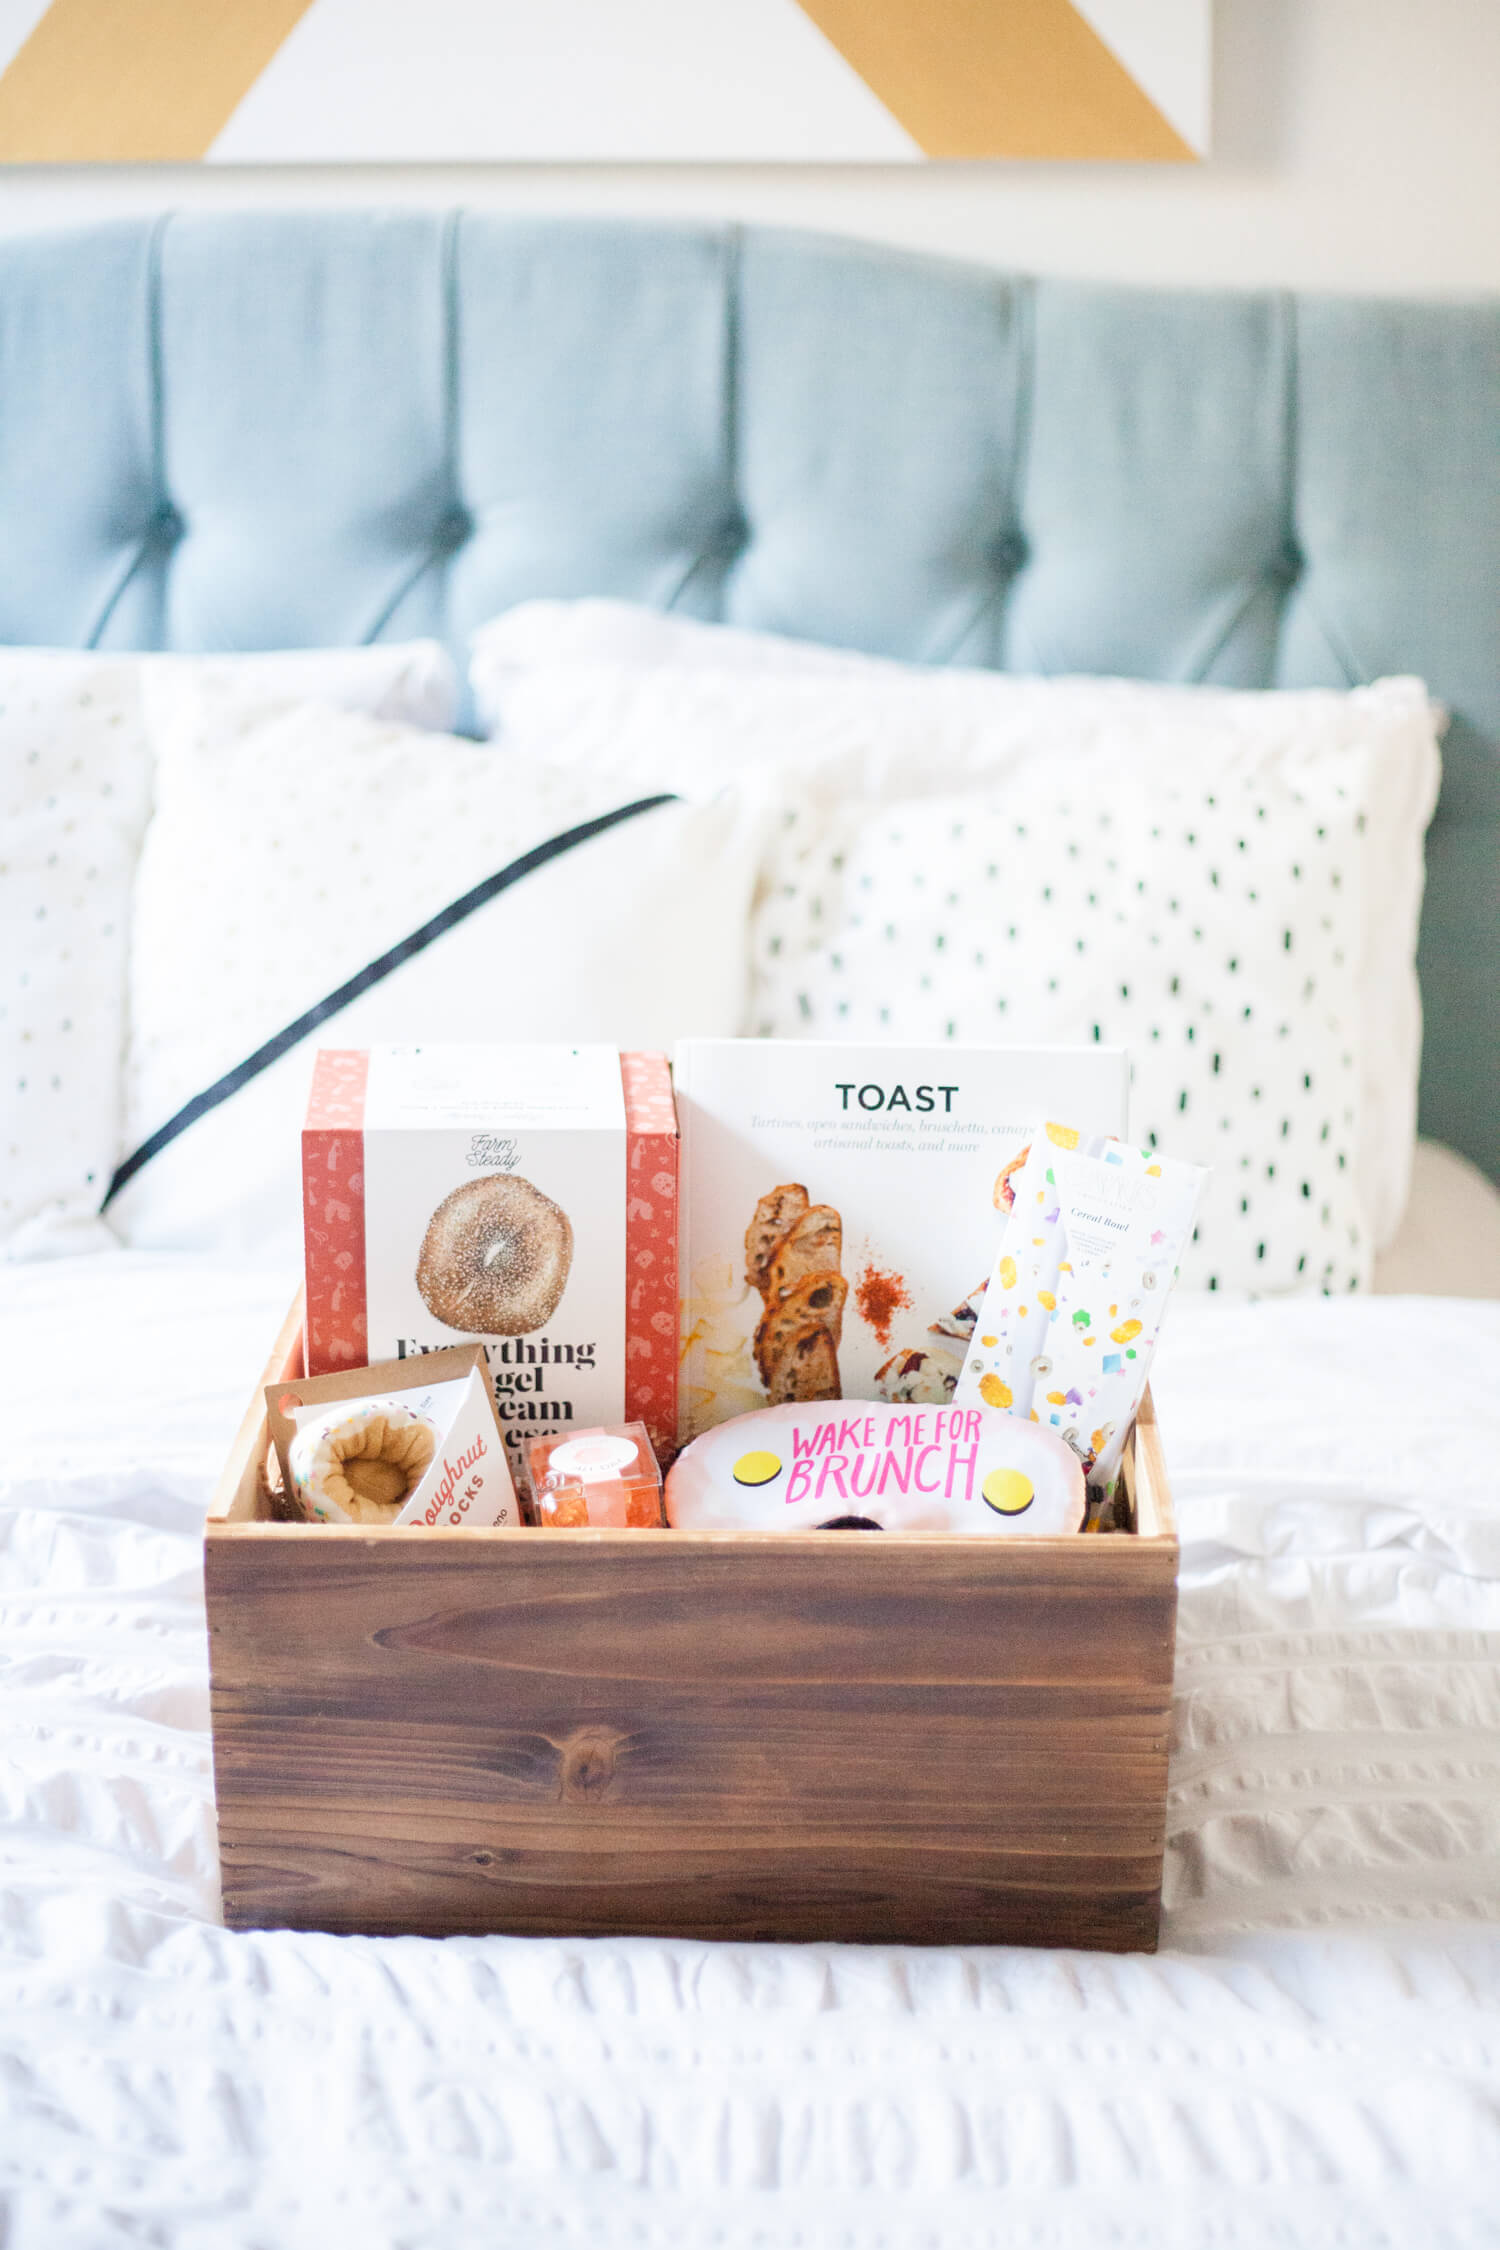 Brunch-themed adult gift basket ideas